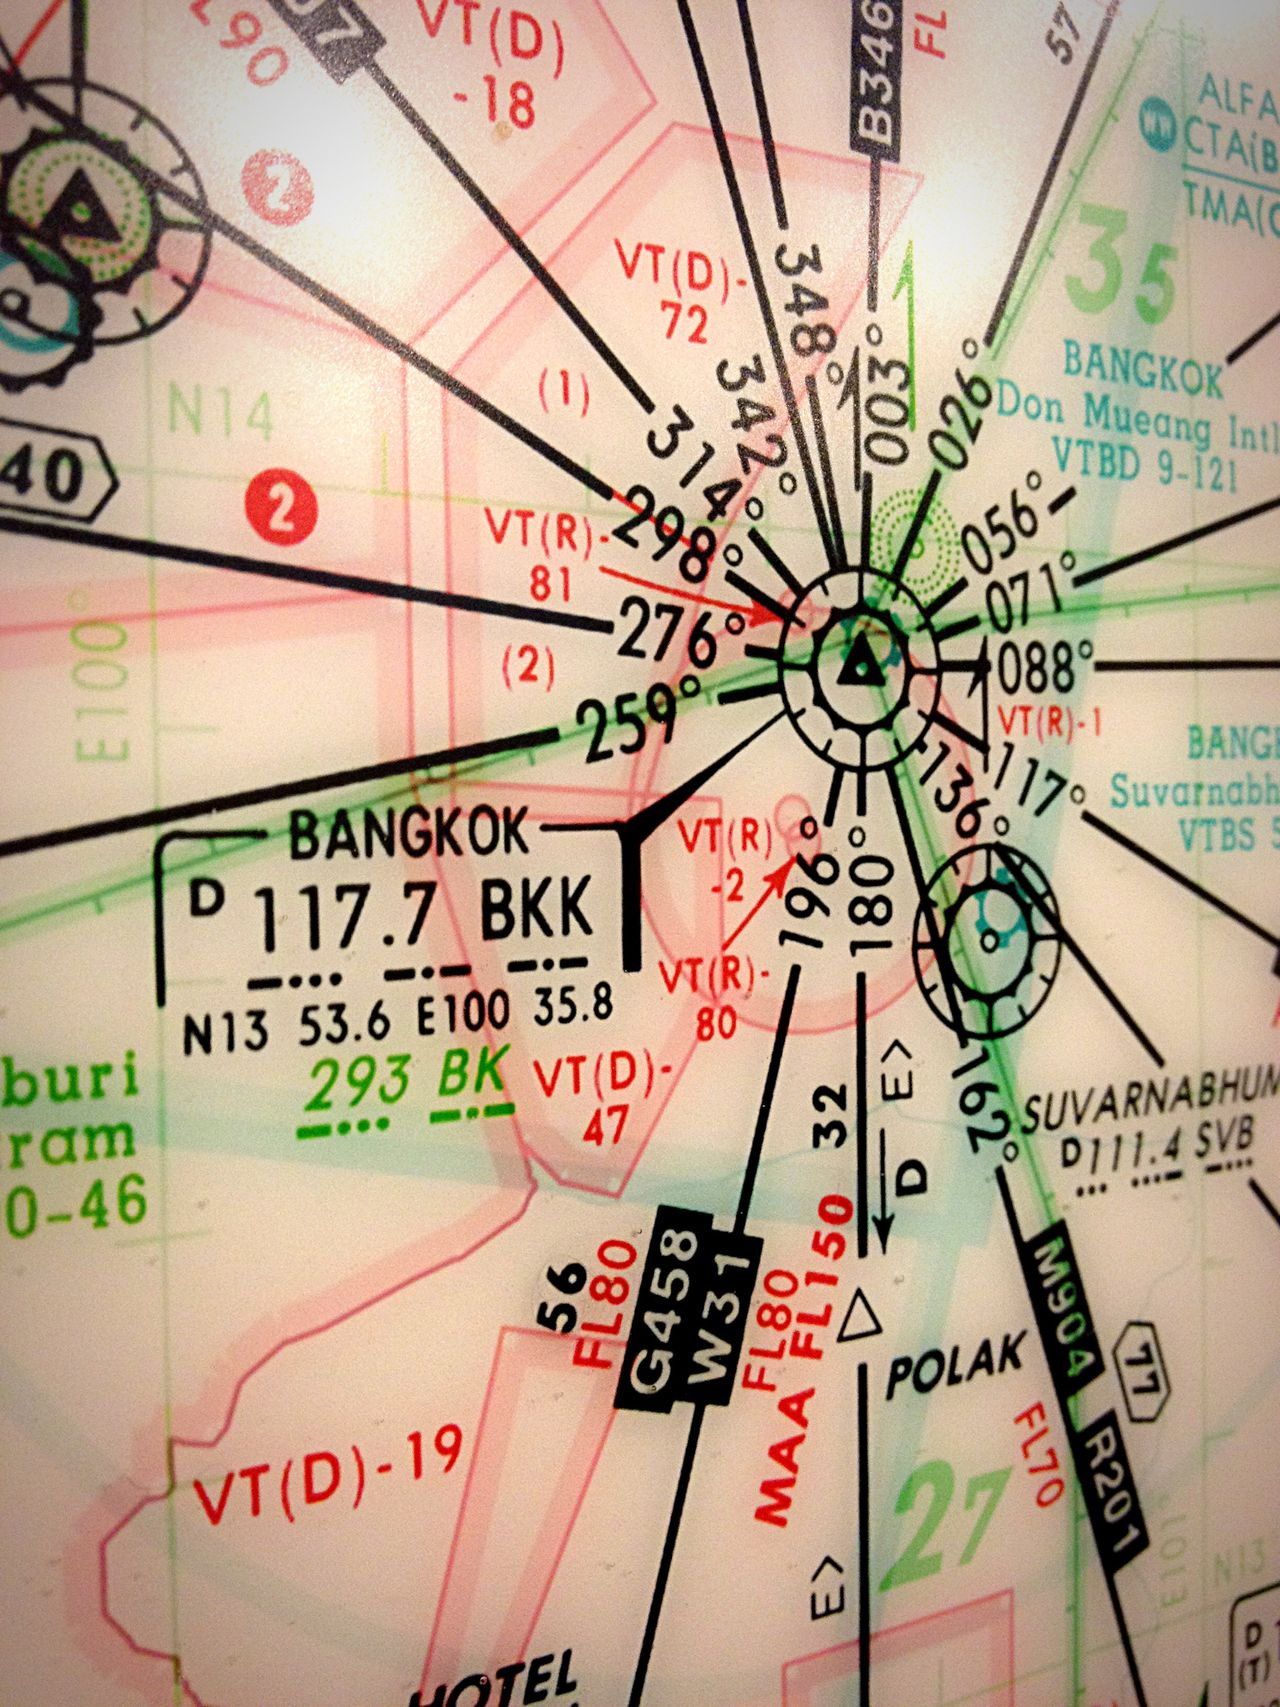 Communication No People Text Close-up Full Frame Map Day Thailand Bangkok Thailand. Bangkok Coordinate Latitude Longitude Flight Flight Mode Pin Code